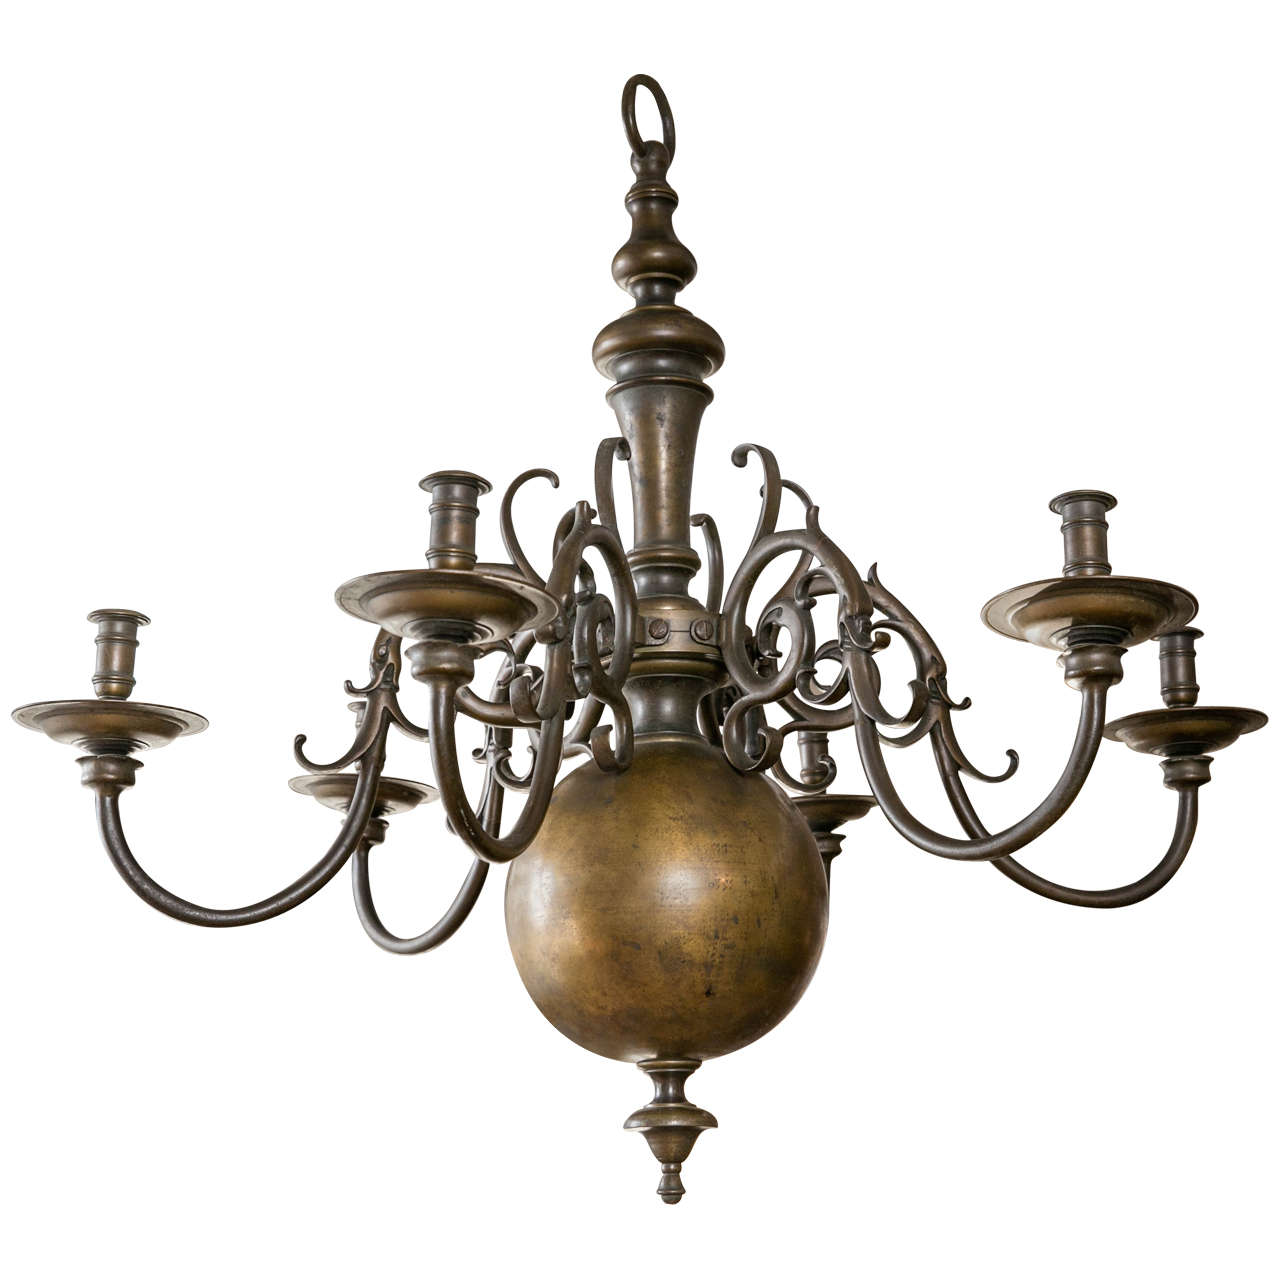 Brass candle chandelier chandelier designs antique brass candle chandelier designs aloadofball Choice Image